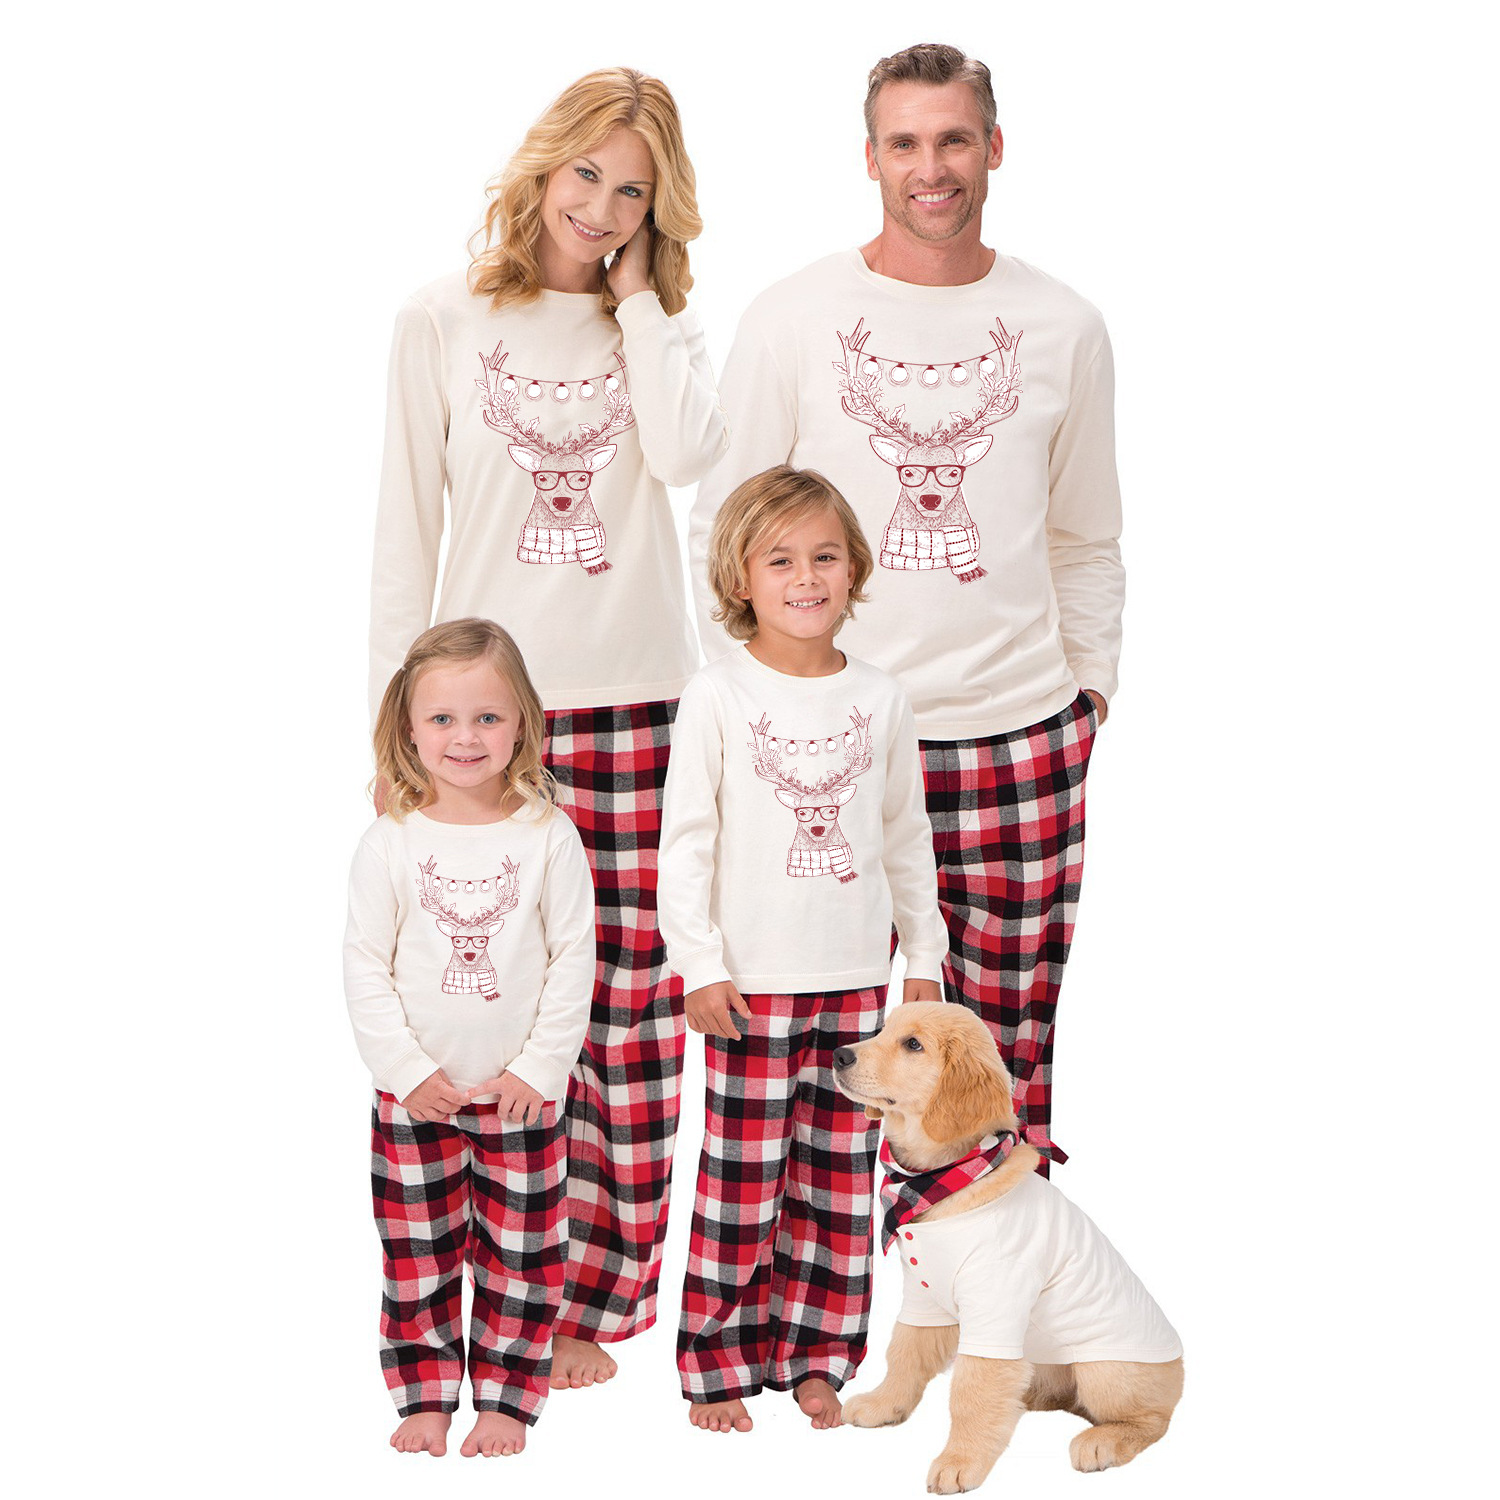 Christmas Family Matching Pajamas Sleepwear Sets Christmas White Deer Top and Red Plaids Pants